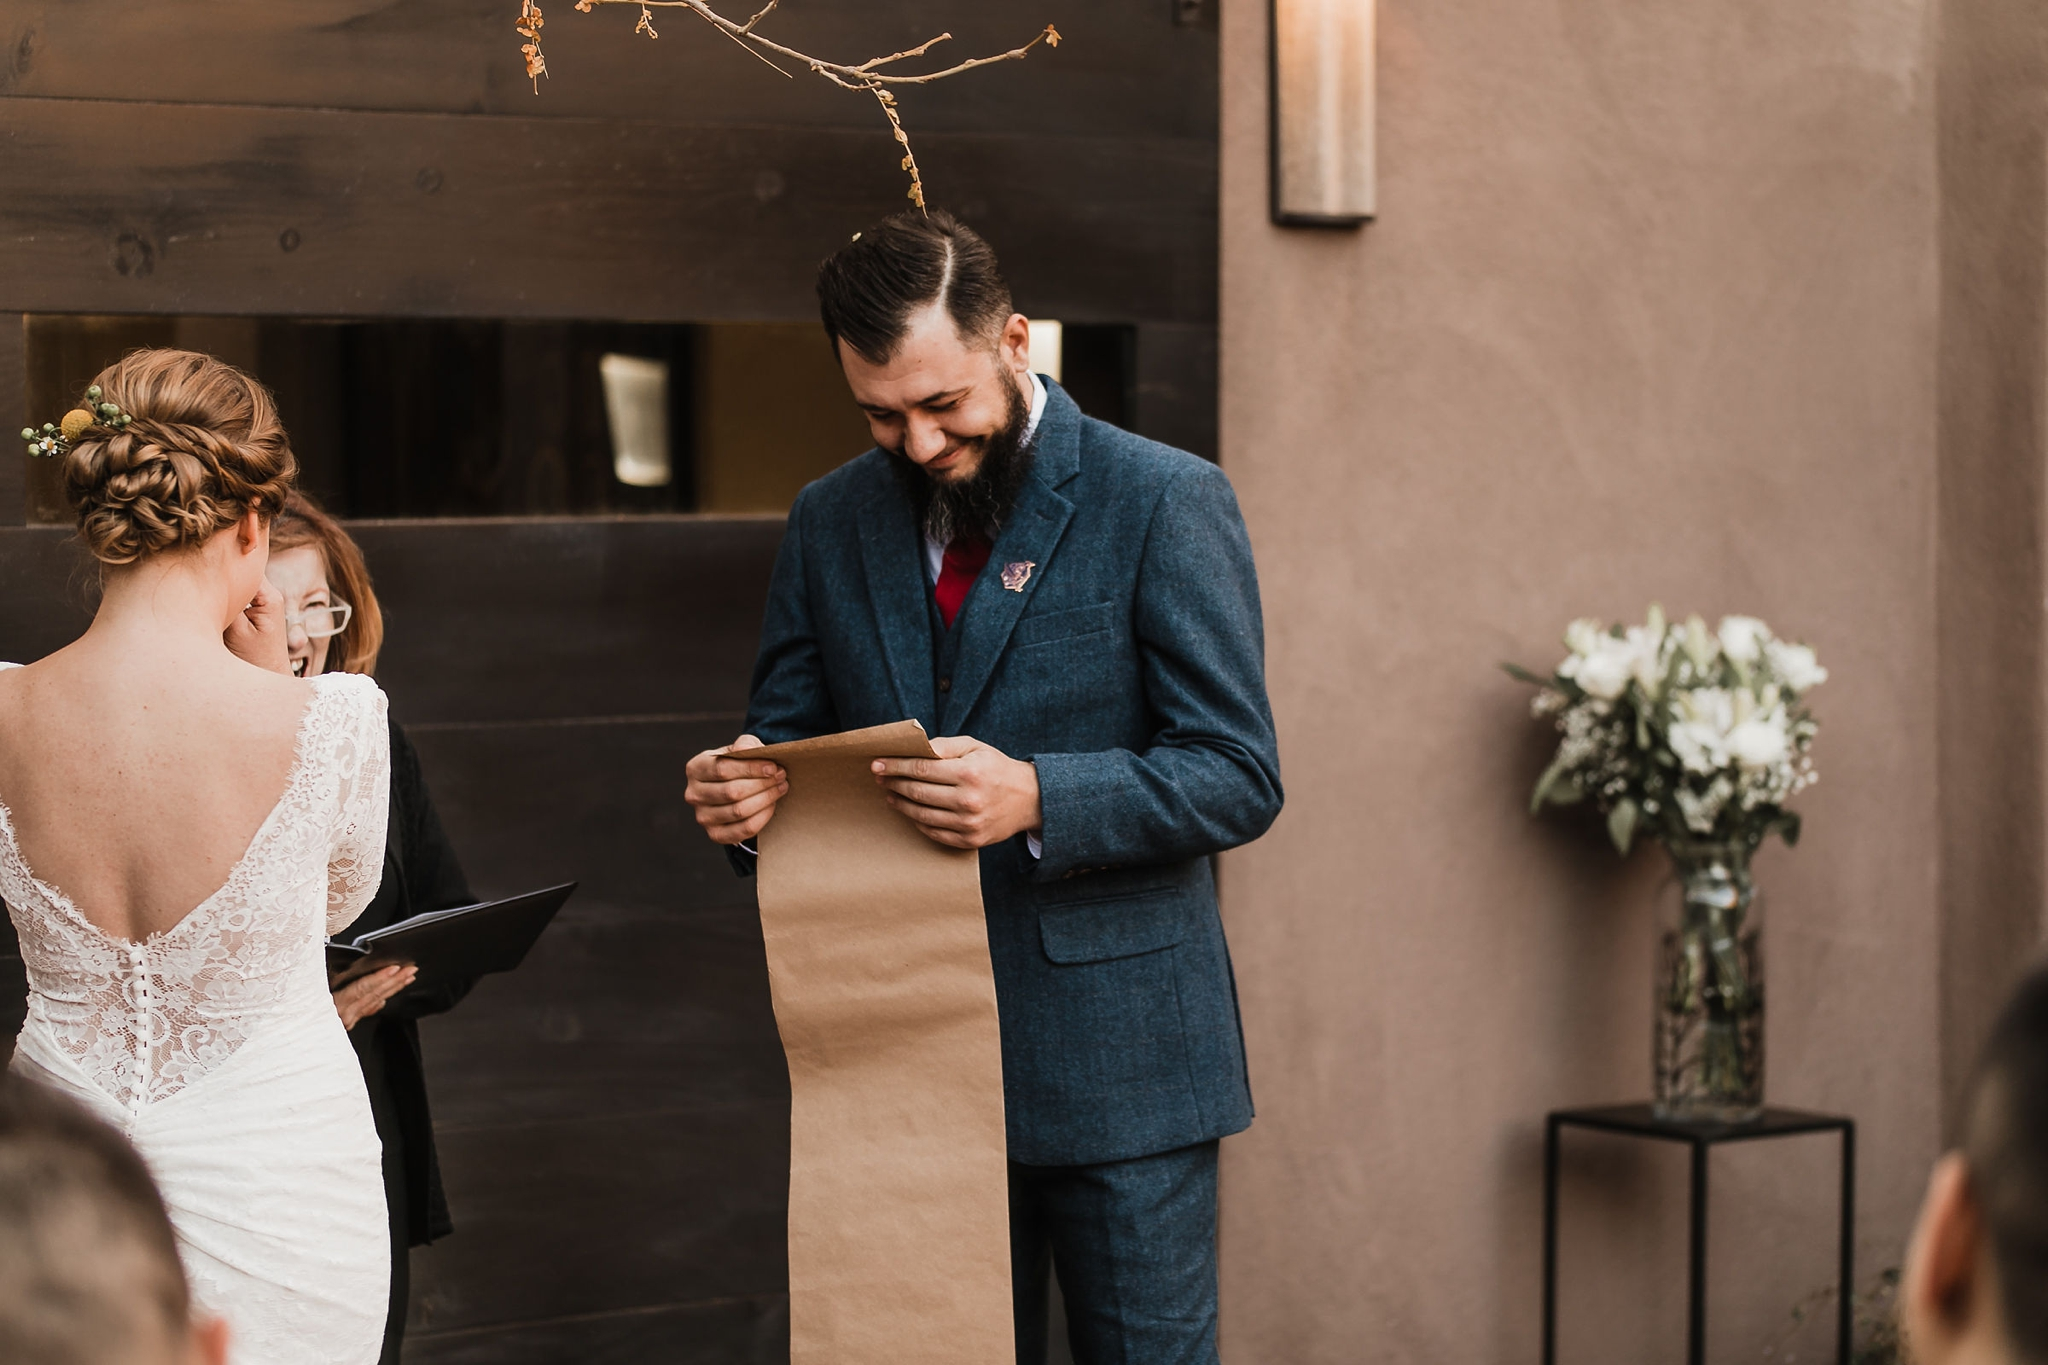 Alicia+lucia+photography+-+albuquerque+wedding+photographer+-+santa+fe+wedding+photography+-+new+mexico+wedding+photographer+-+new+mexico+wedding+-+wedding+vows+-+writing+your+own+vows+-+wedding+inspo_0021.jpg